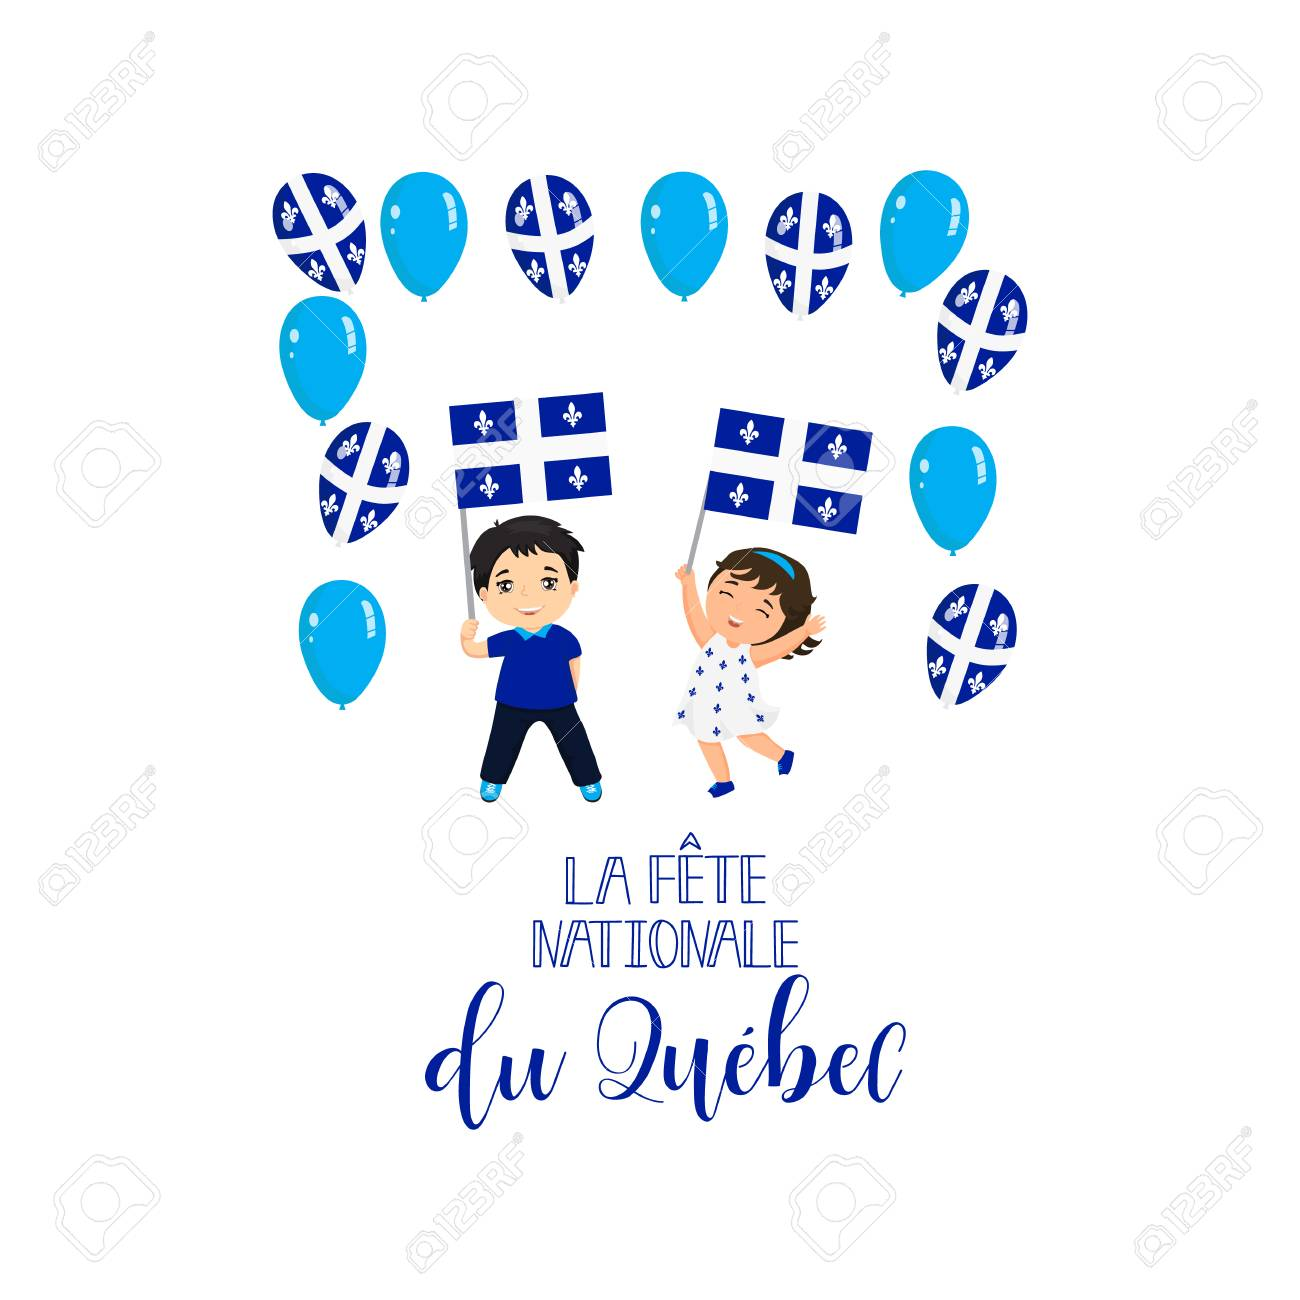 Quebec National Day Greeting Card Template Design Layout For